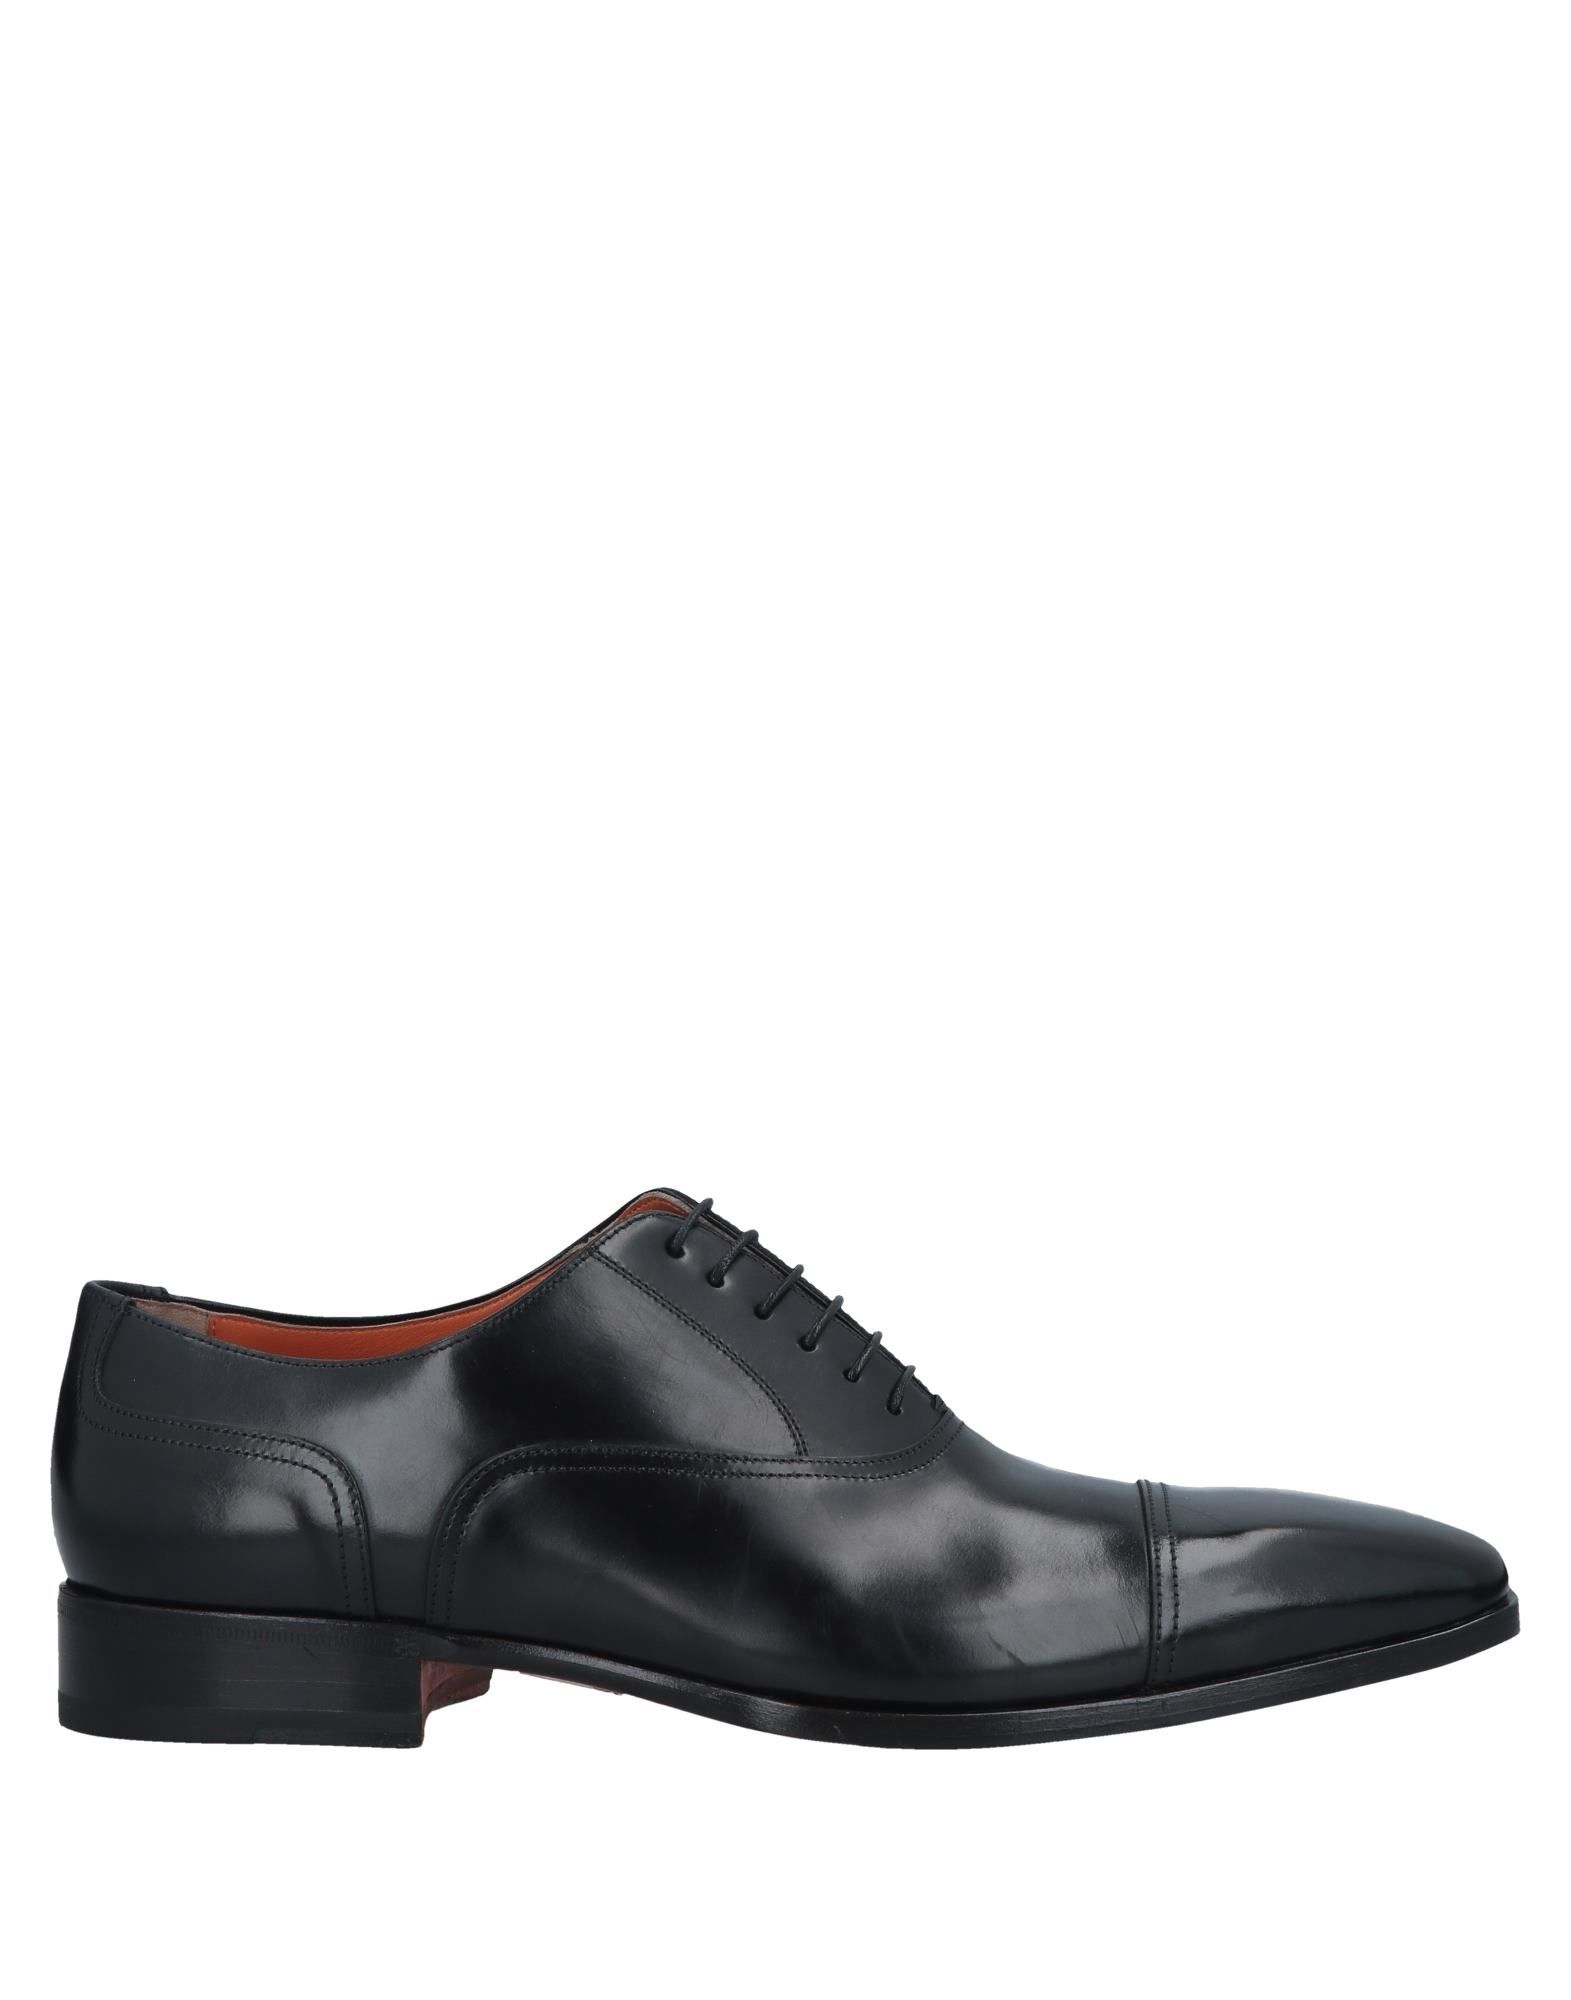 SANTONI Lace-up shoes. polished leather, no appliqués, solid color, square toeline, square heel, leather lining, leather sole, contains non-textile parts of animal origin, large sized. Soft Leather